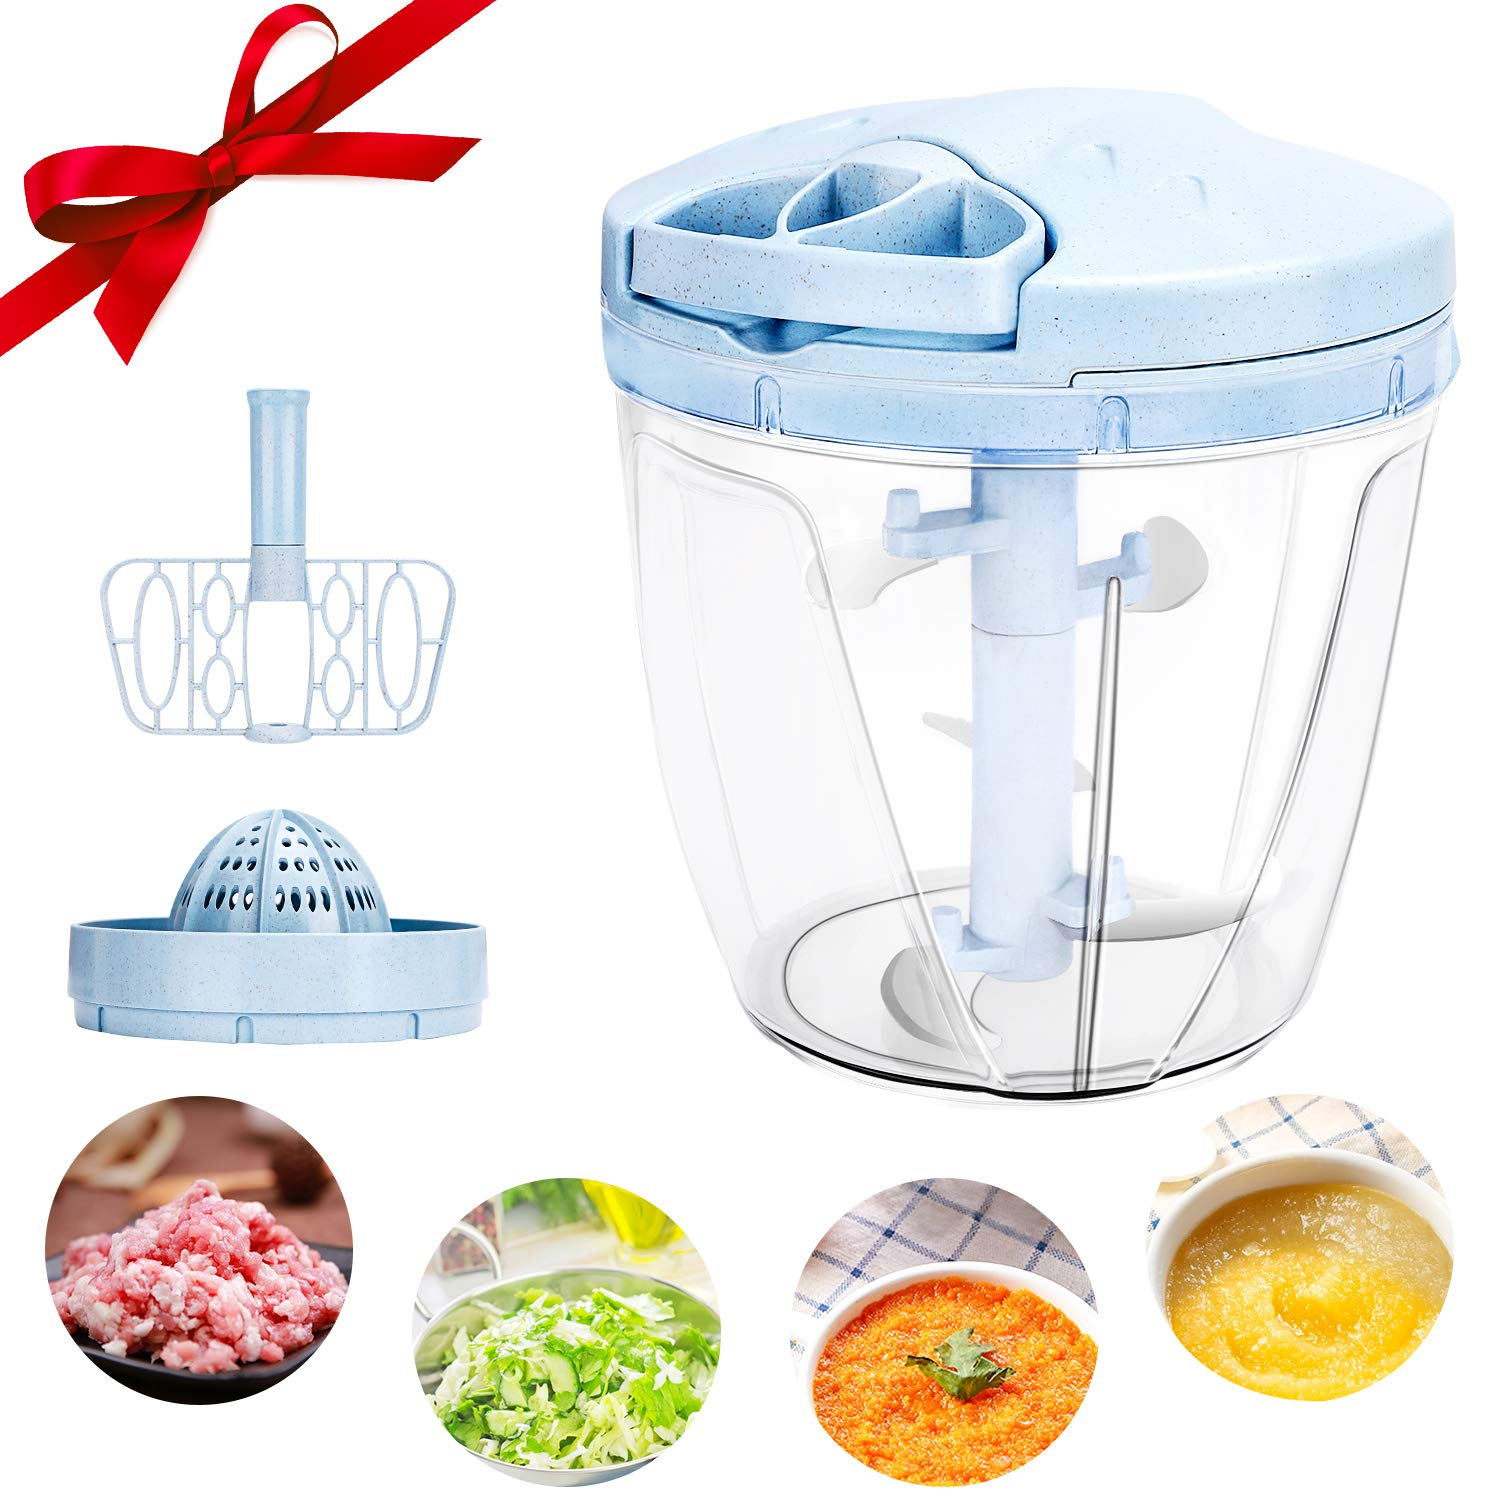 Jovego Manual Food Chopper, 900 ML Hand Chopper Pull Food Processor with Manual Juicer and Mixer,Onion Chopper with 5…